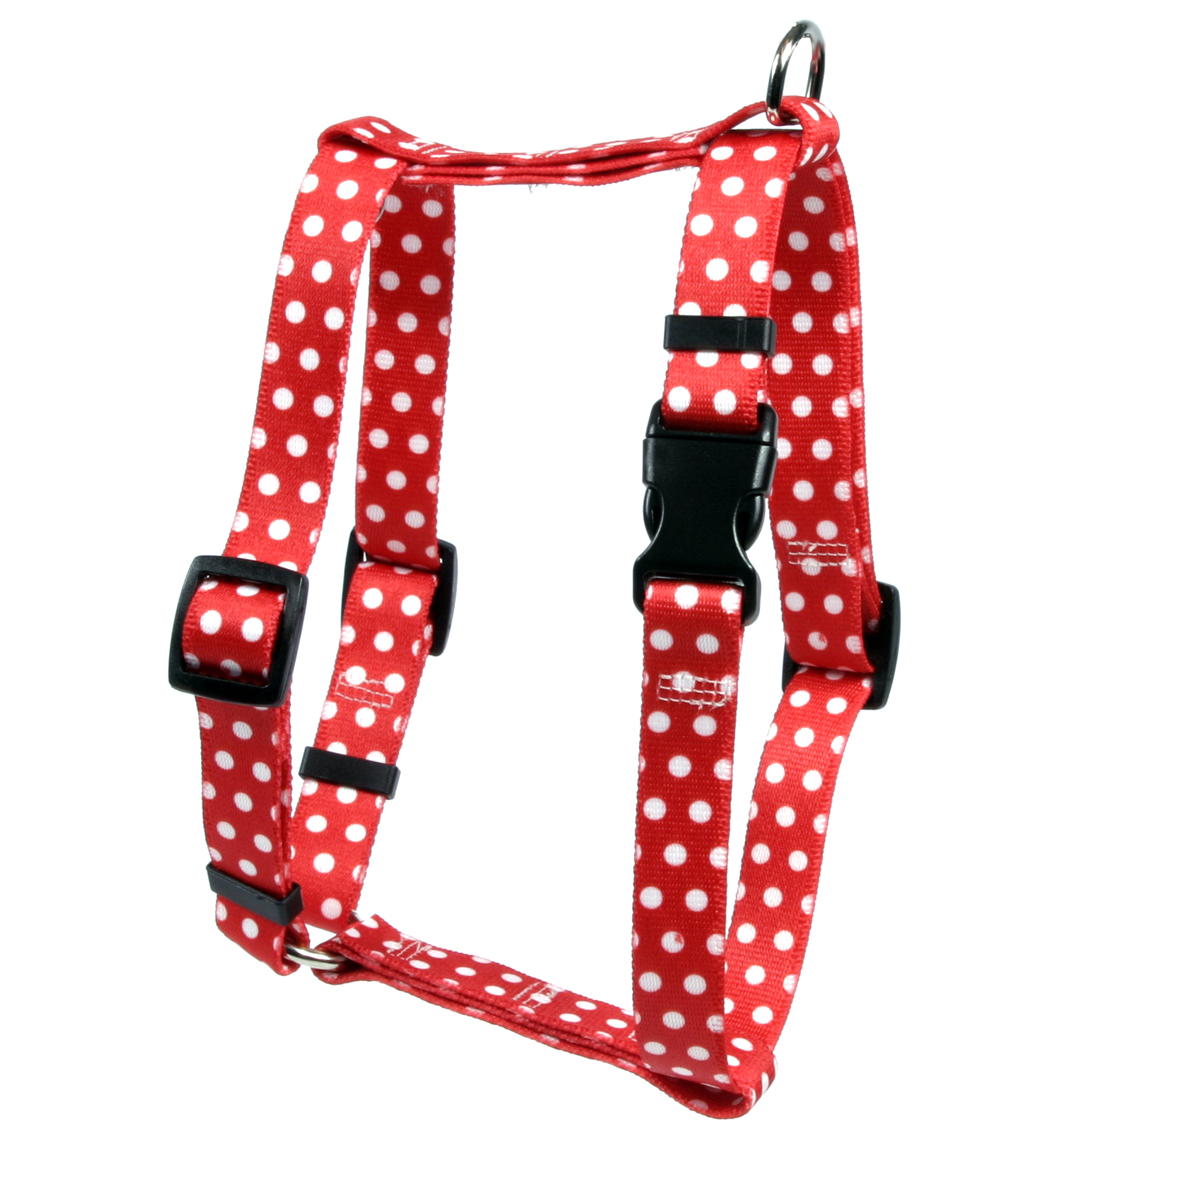 New Red Polka Dot Roman H Harness